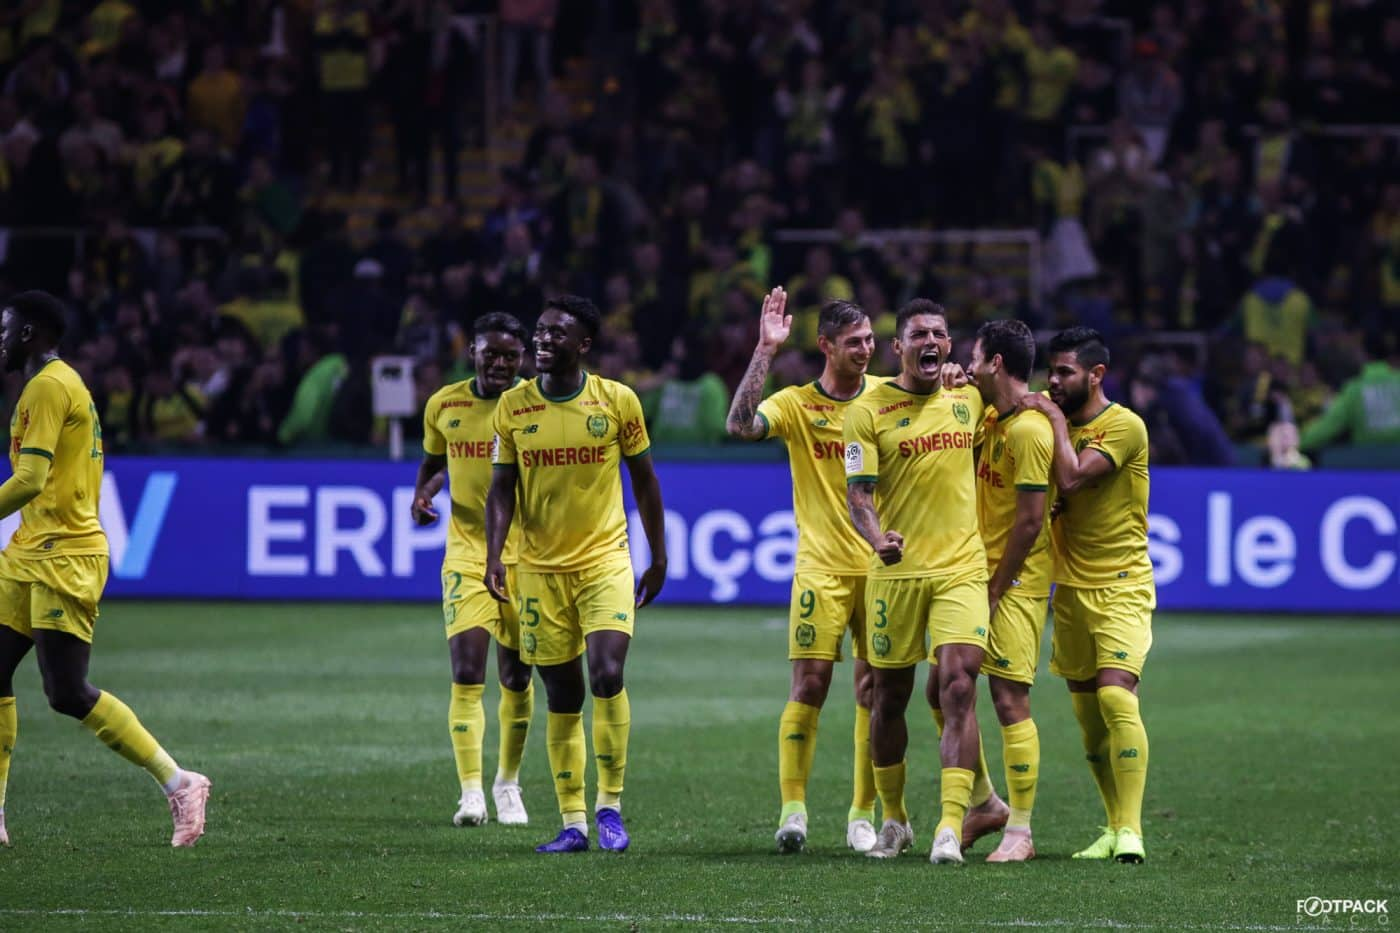 fc-nantes-top-50-photos-footpack